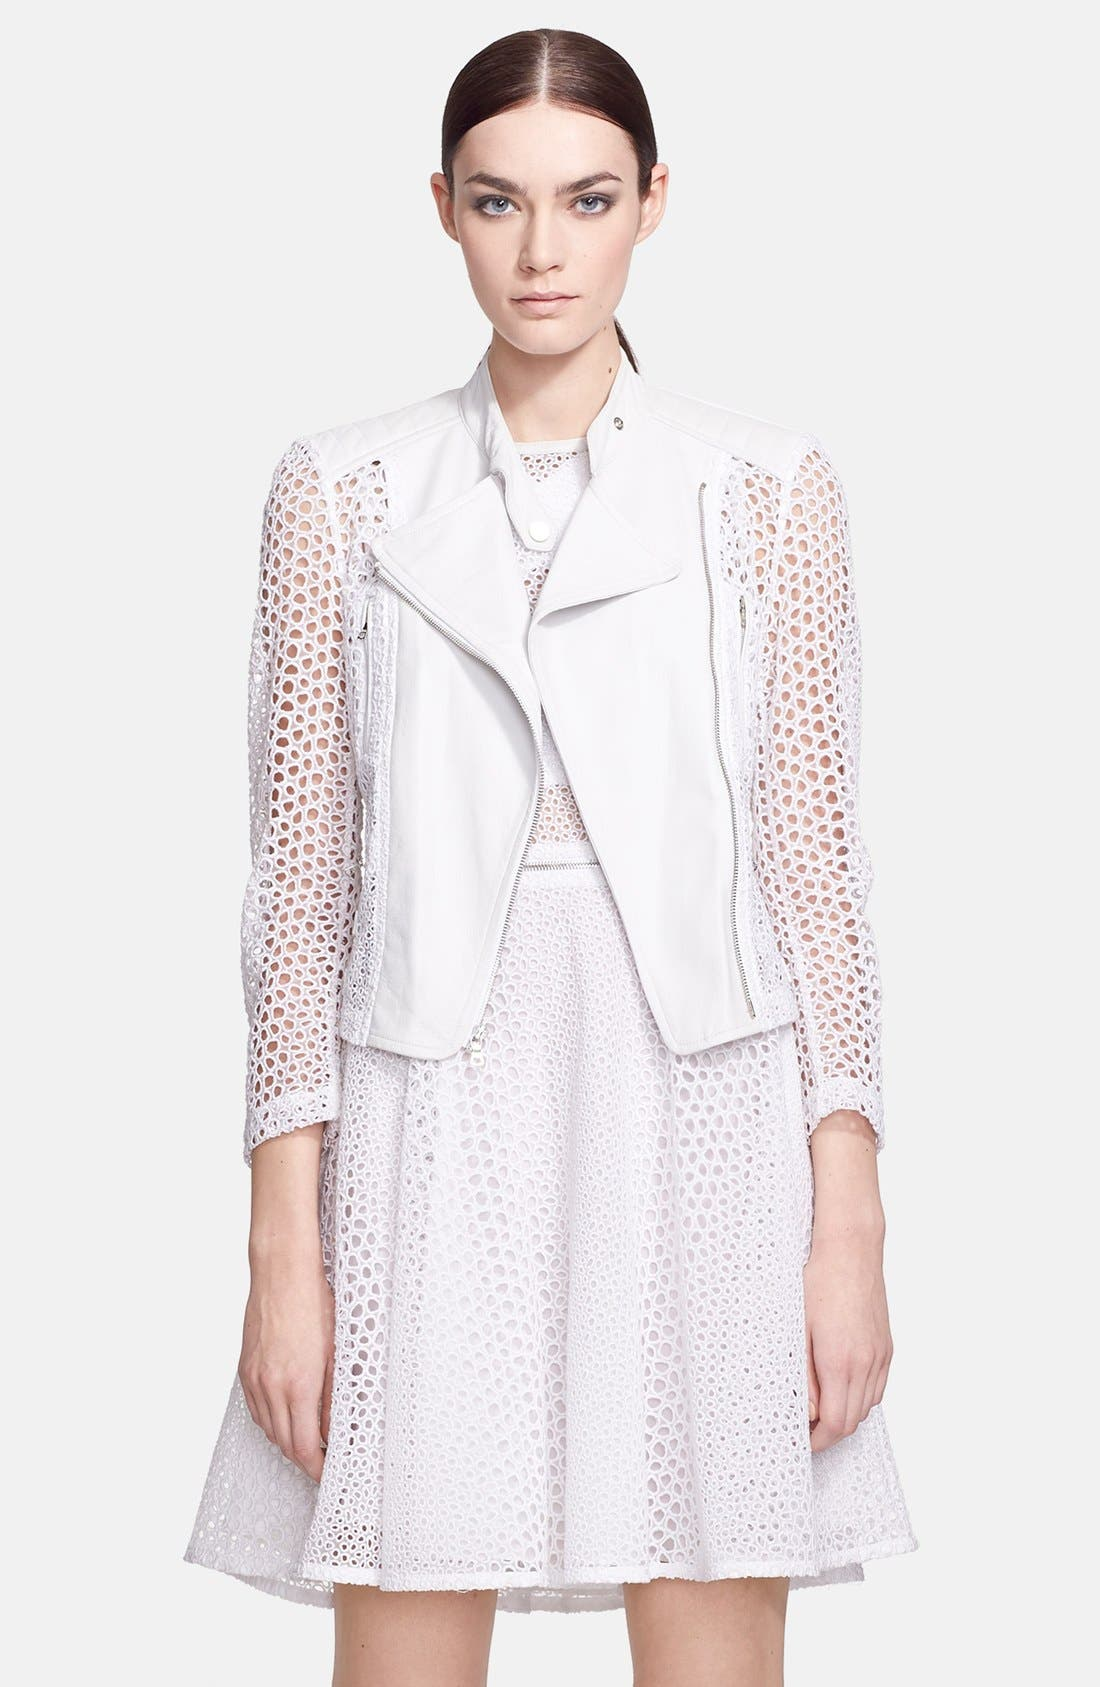 Alternate Image 1 Selected - Yigal Azrouël Organza Eyelet & Leather Jacket